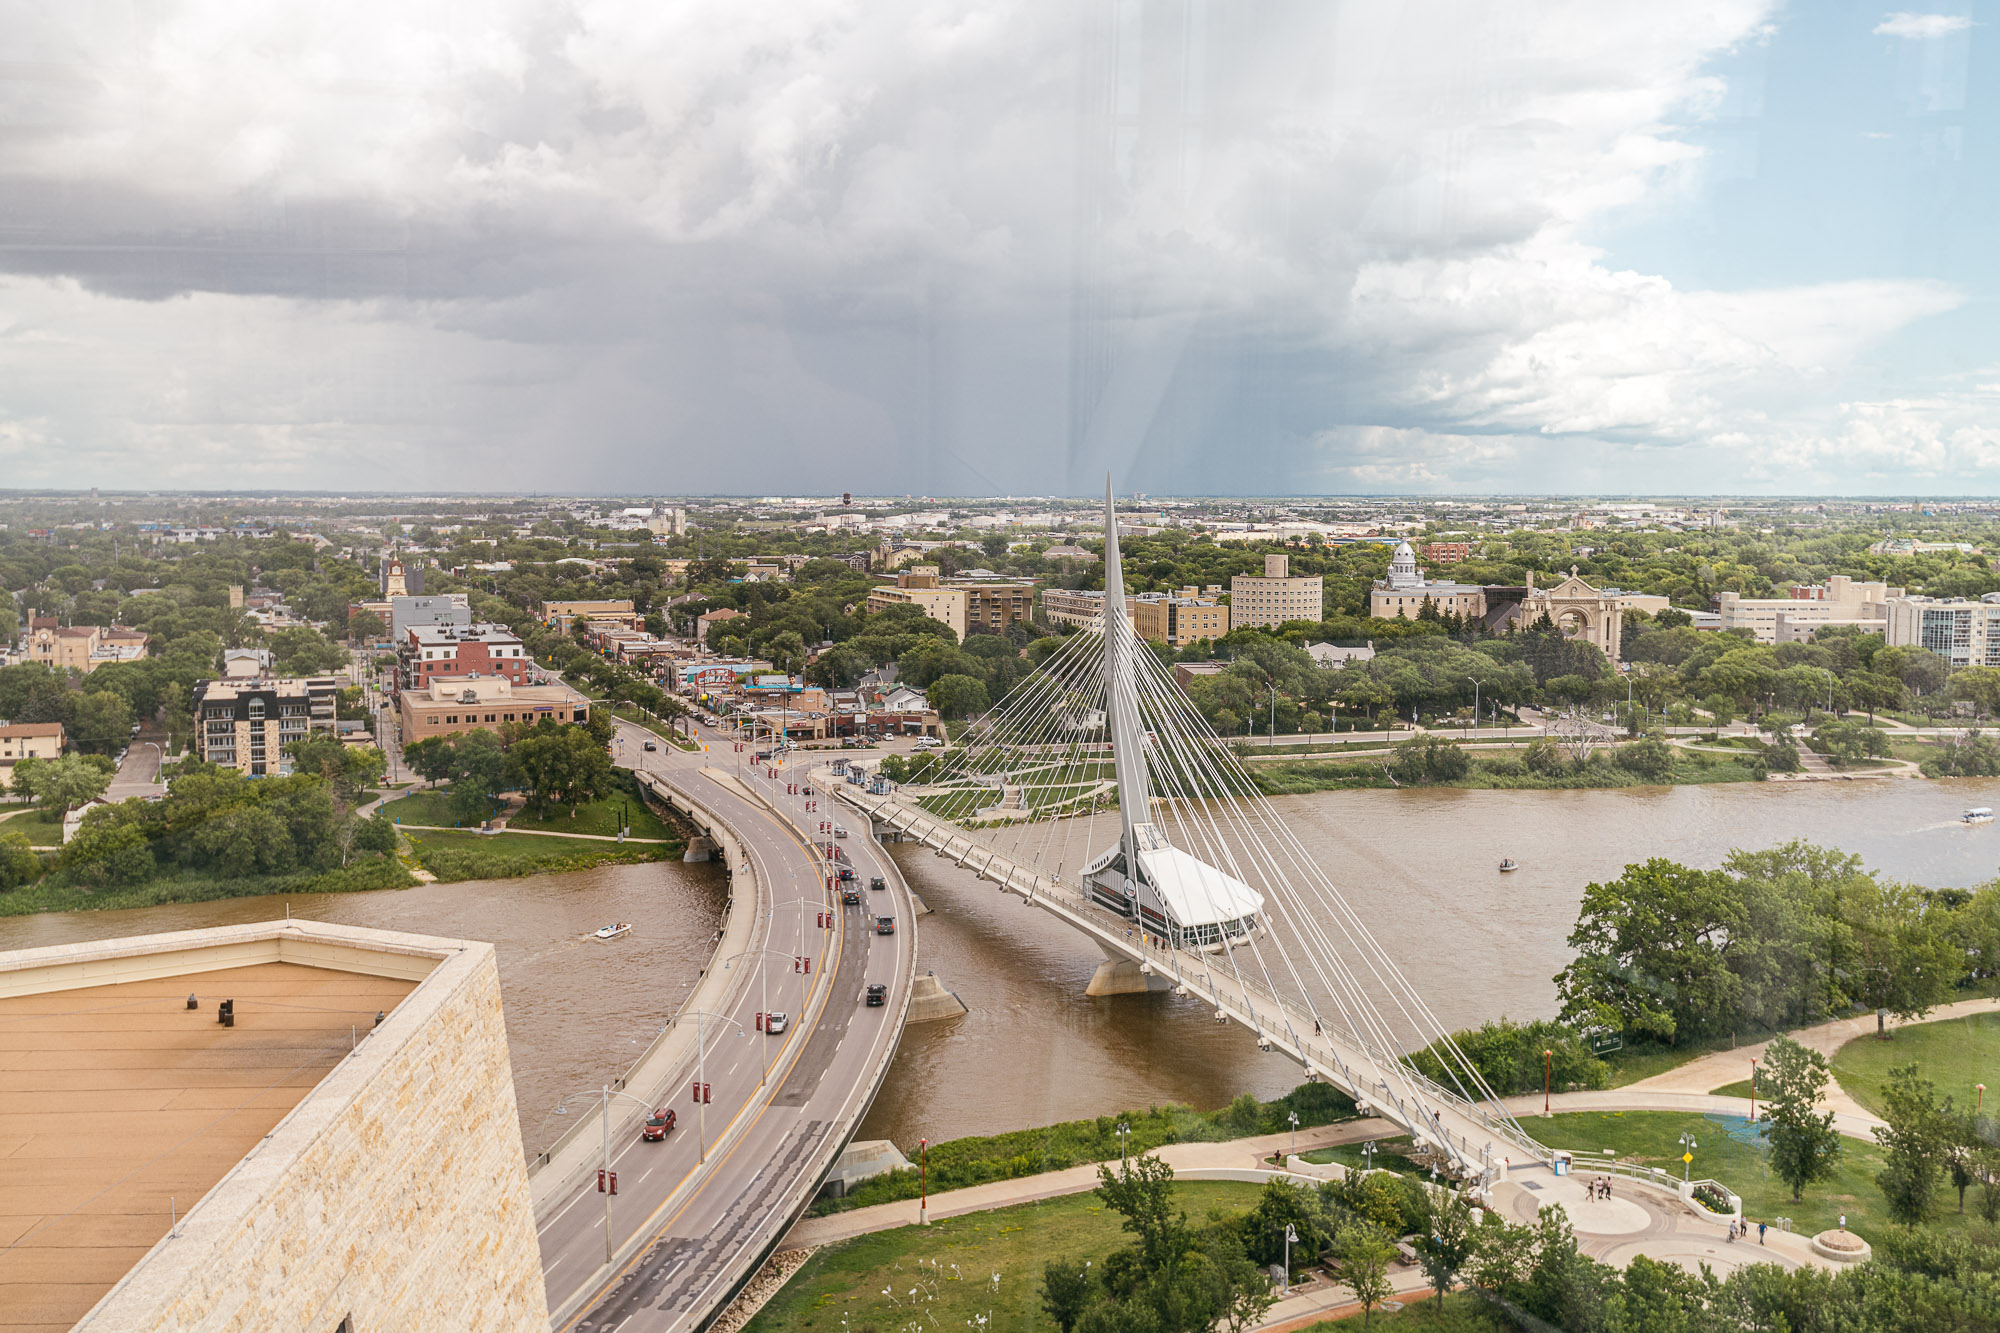 Canadian Museum for Human Rights — Antoine Predock Architect PC — Winnipeg — Manitoba — Jeff Frenette Photography — Jeff On The Road - All photos are under Copyright  © 2019 Jeff Frenette Photography / dezjeff. To use the photos, please contact me at dezjeff@me.com.